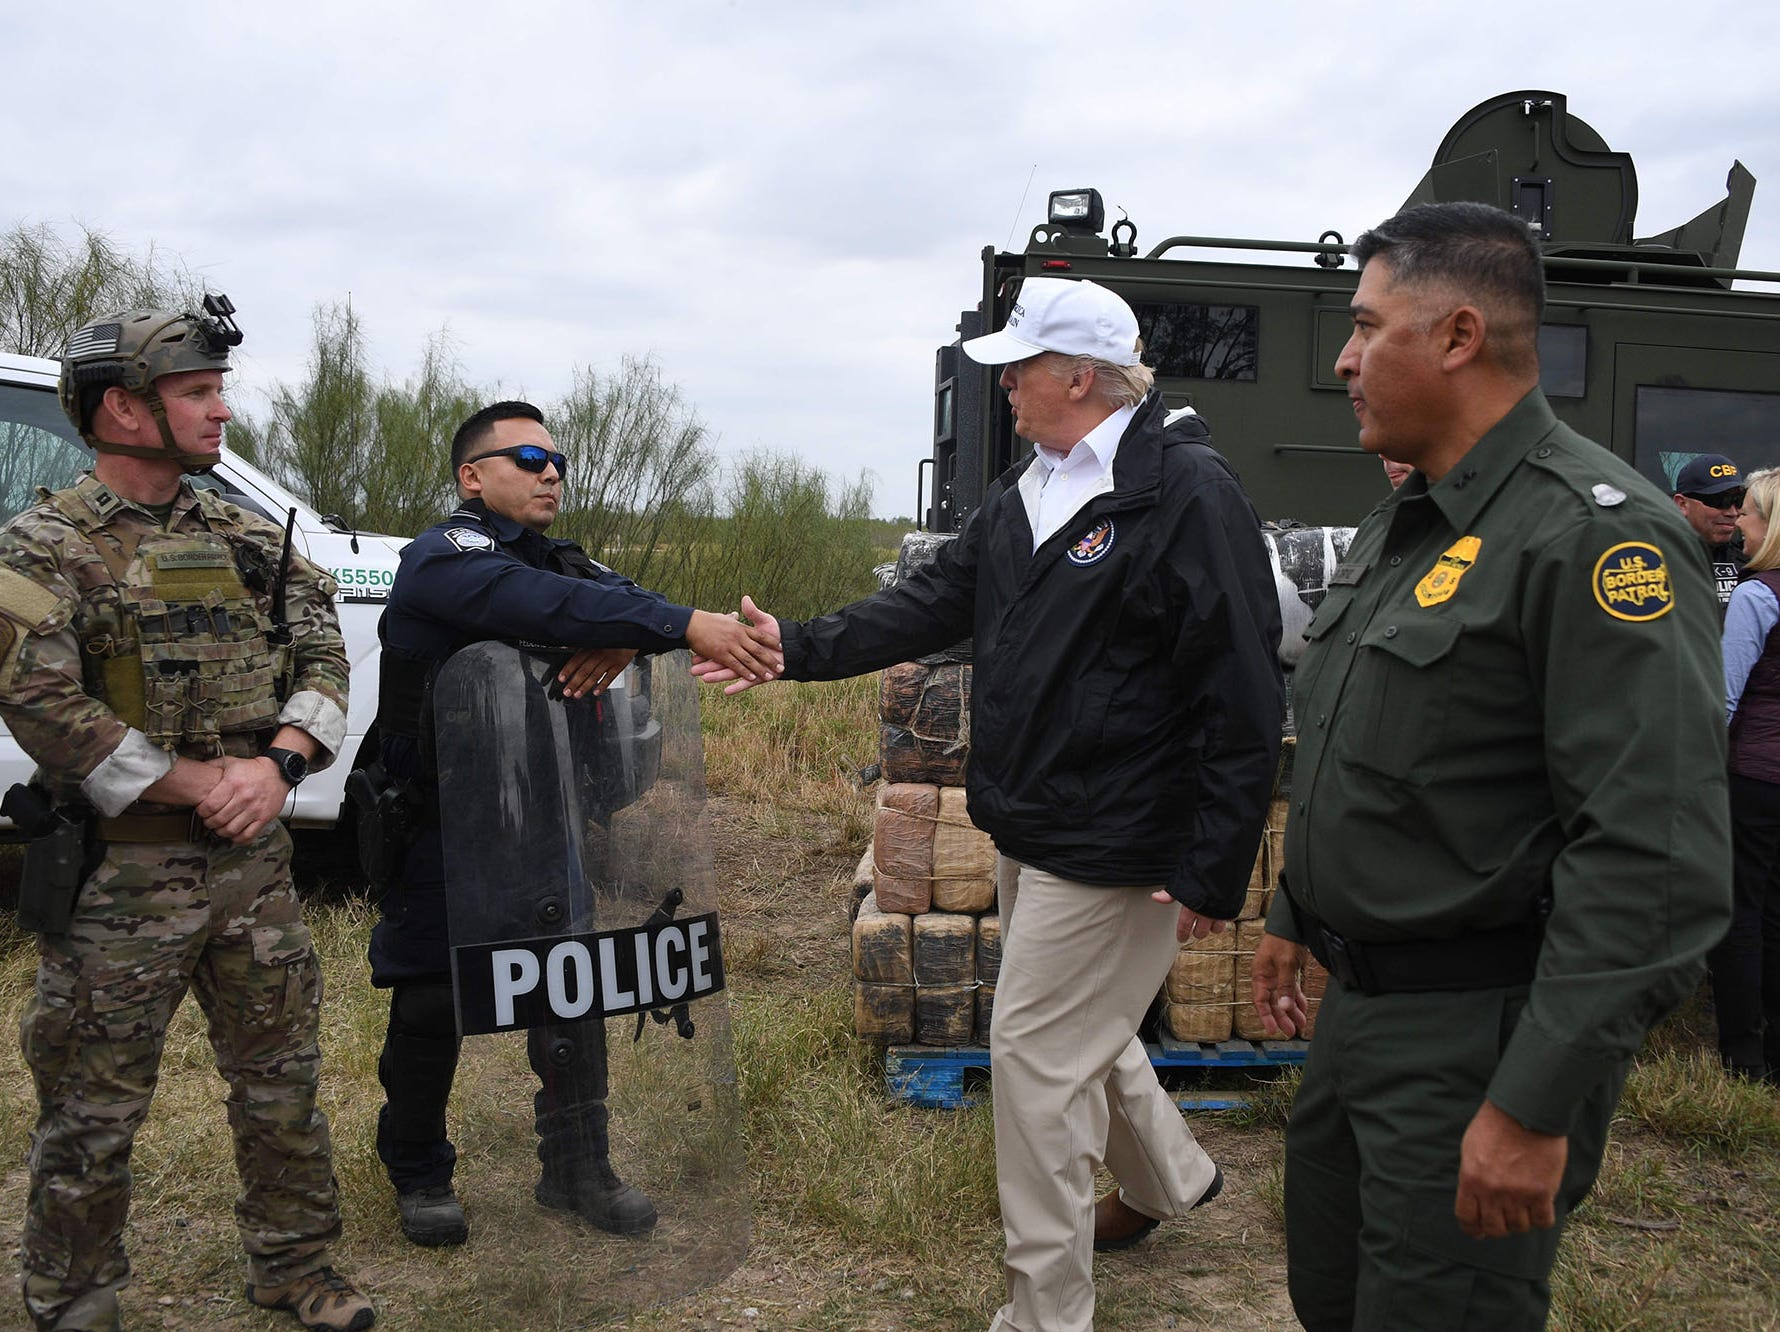 President Donald Trump greets a policeman with Border Patrol agents,and military after his visit to US Border Patrol McAllen Station in McAllen, Texas, on Jan. 10, 2019.